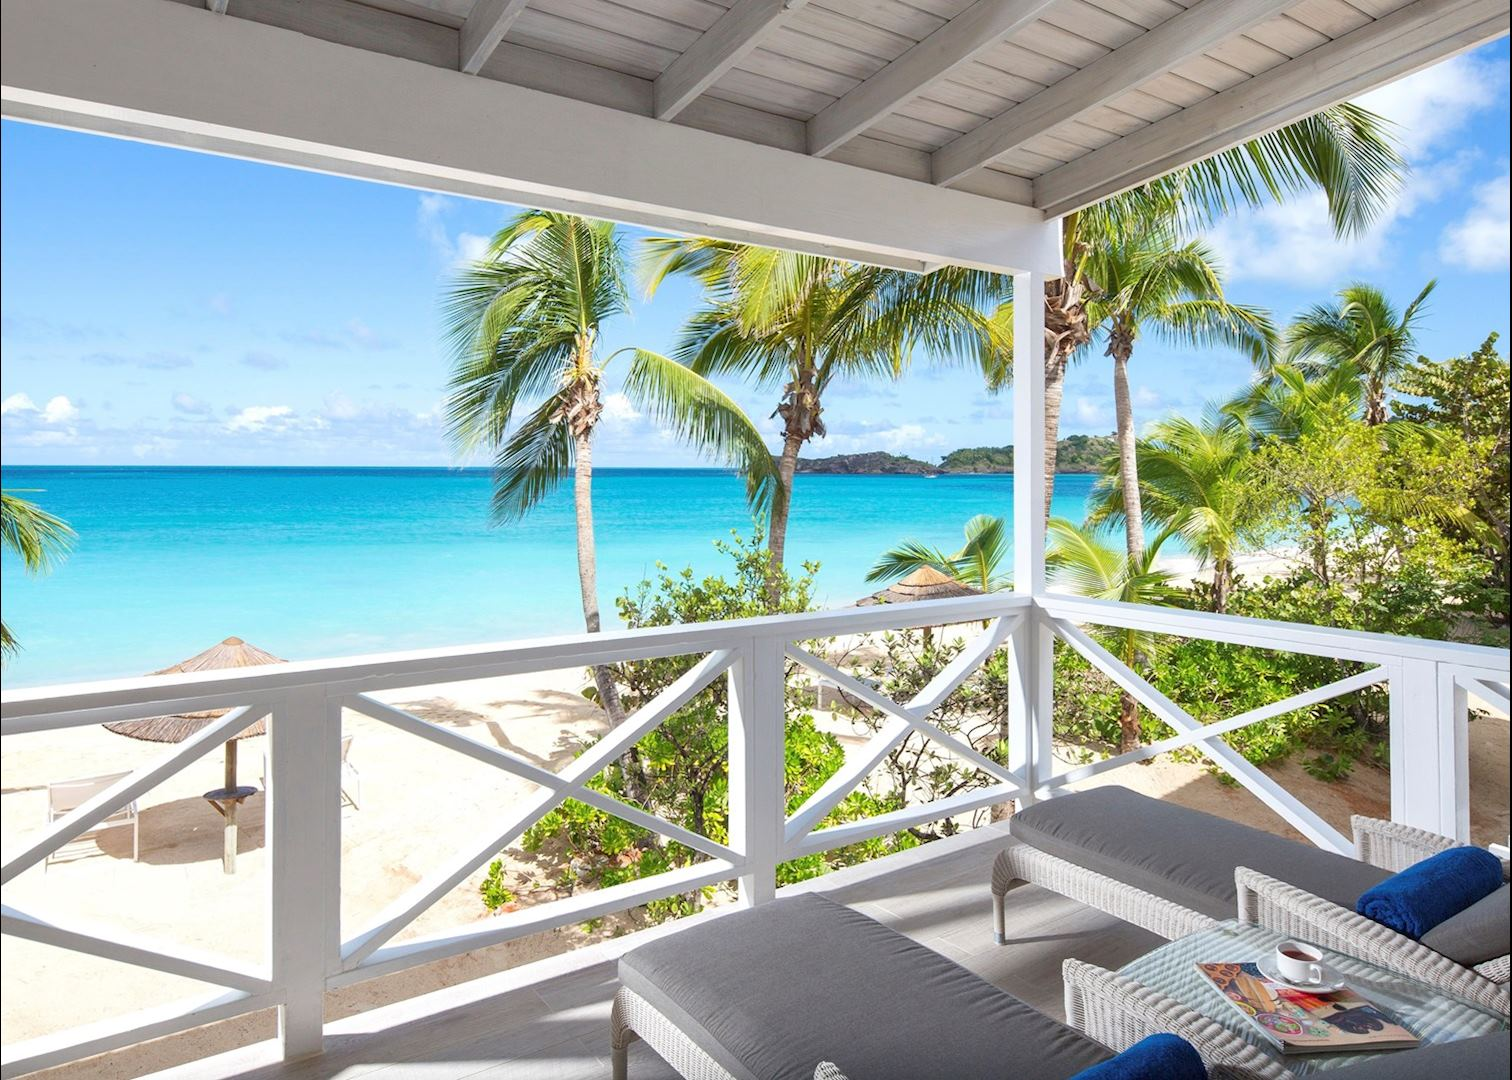 Galley Bay Resort And Spa And Barbados Audley Travel